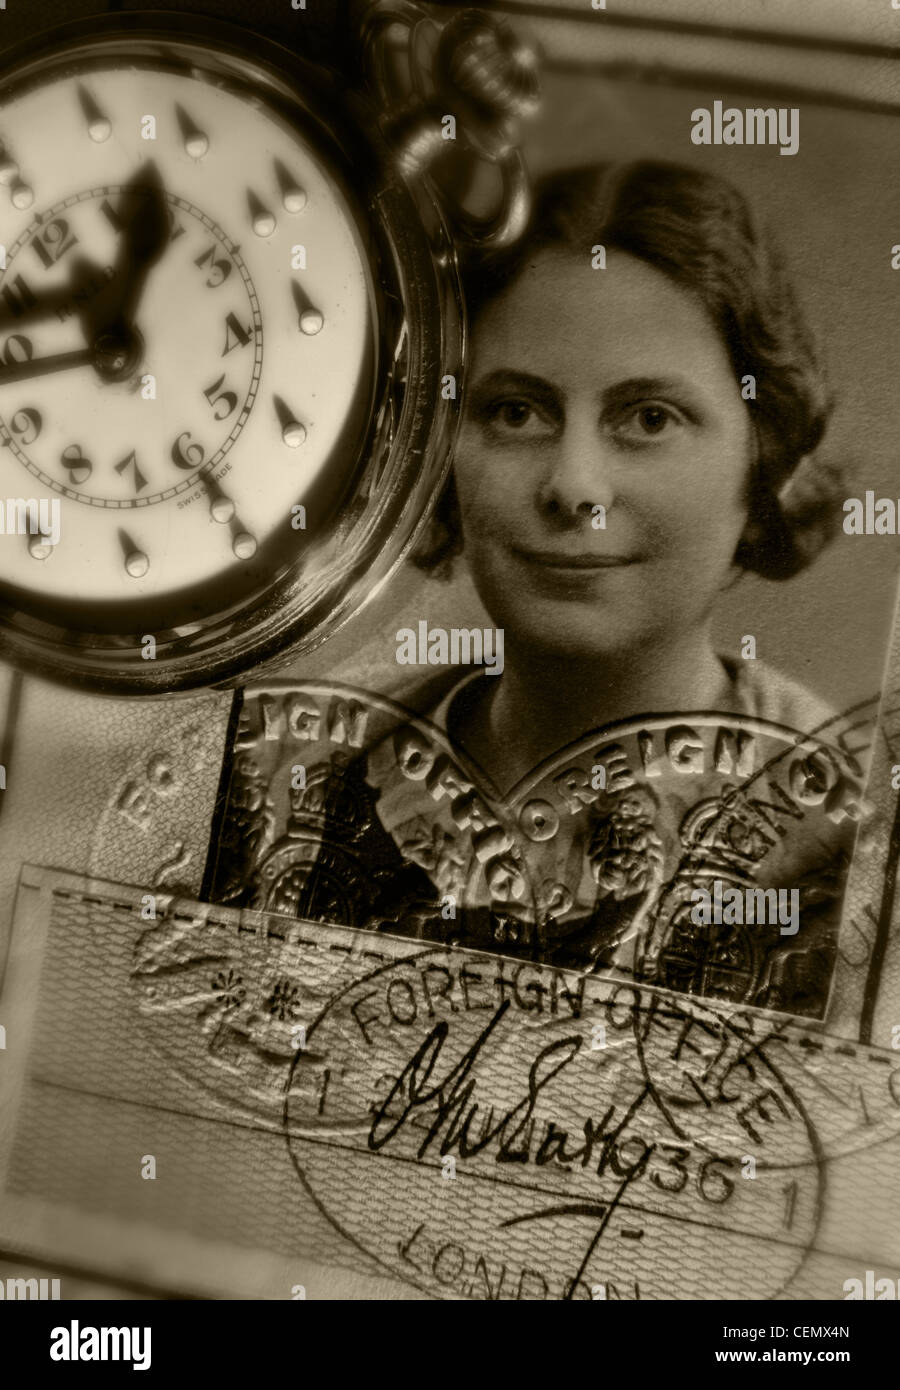 Old British Passport female photograph still life with Braille pocket watch in sepia - Stock Image